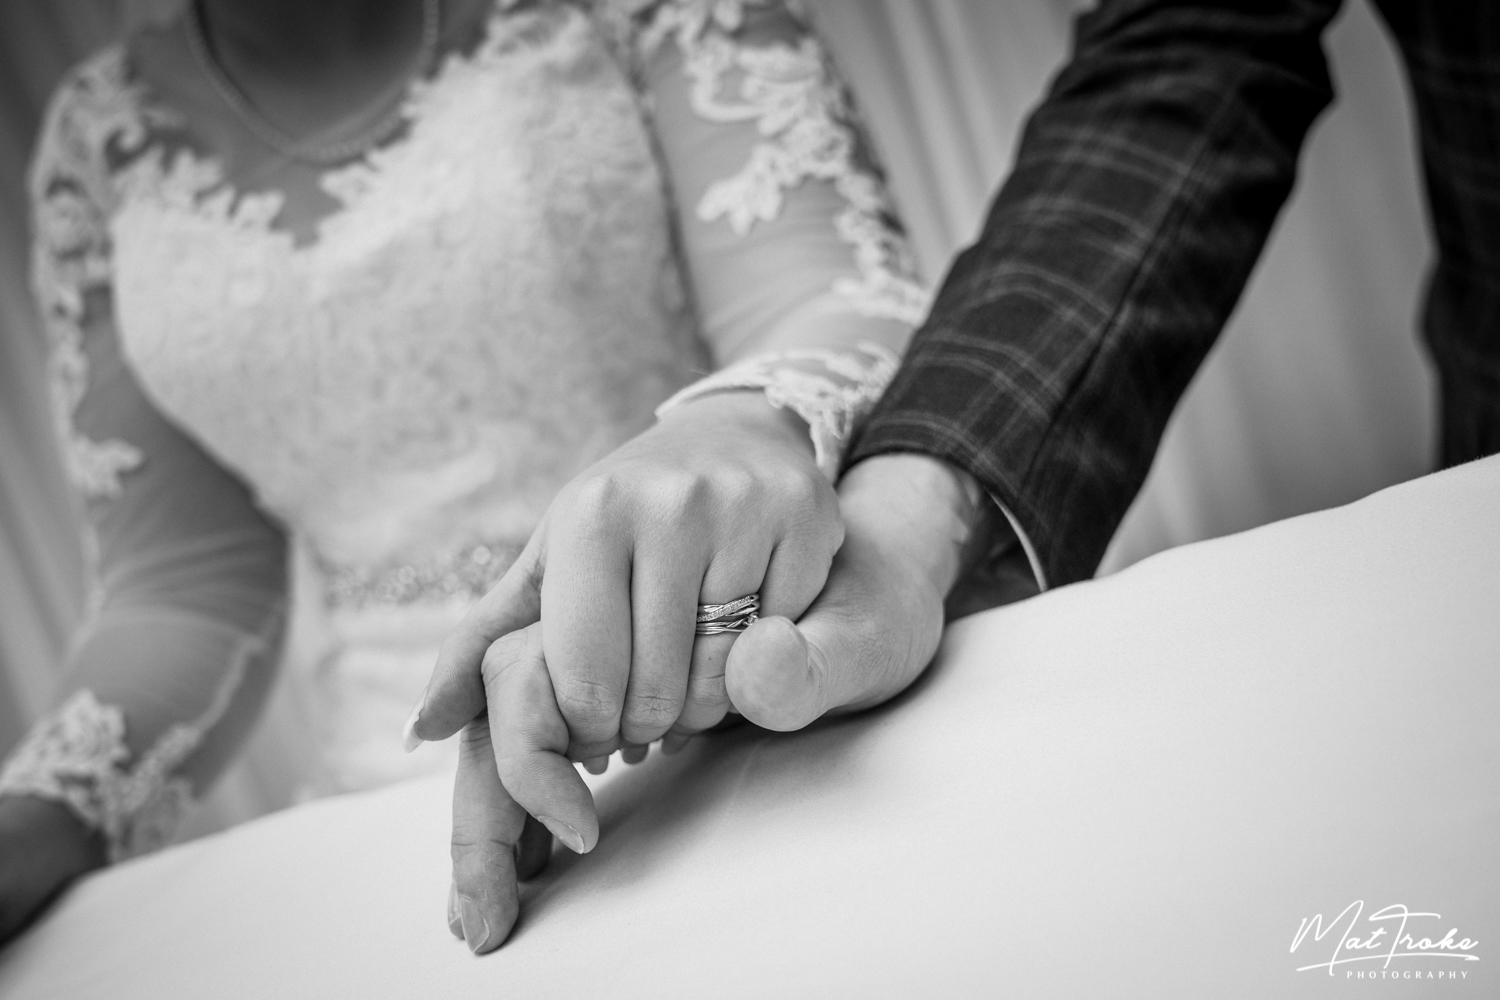 rings-holding-hands-white-heart-inn-moorwood-alfreton-wedding-photographer-photography-sunset-venue